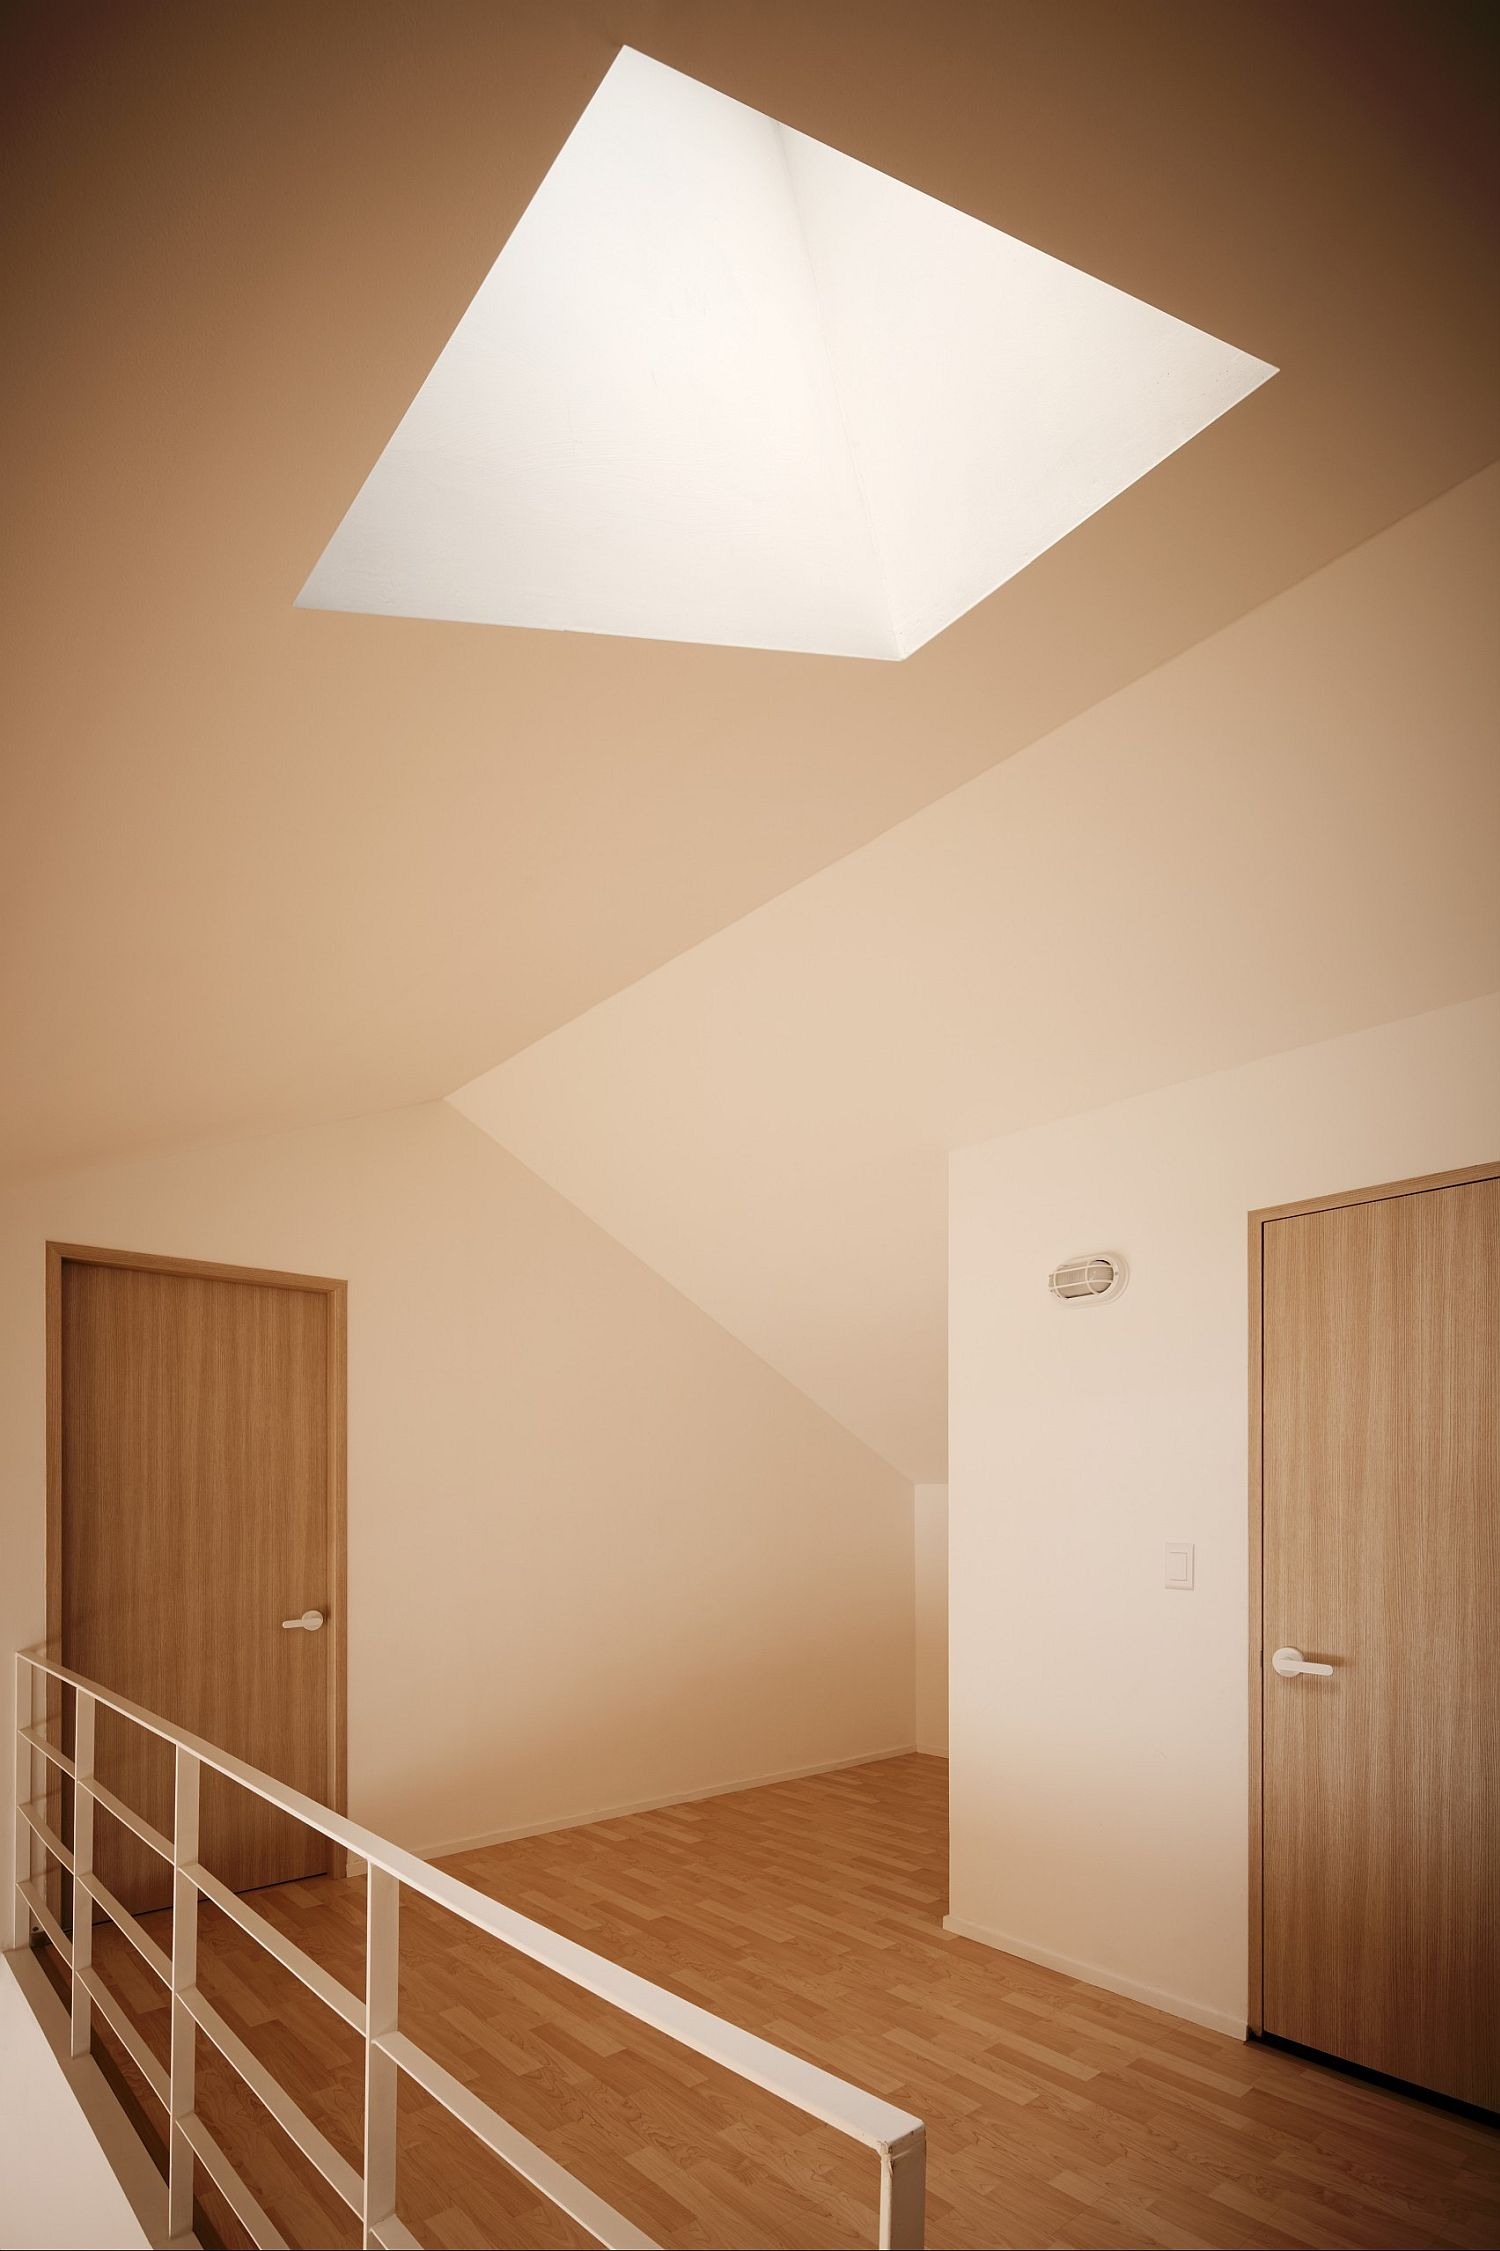 Using the skylight to fill the house with ample natural light